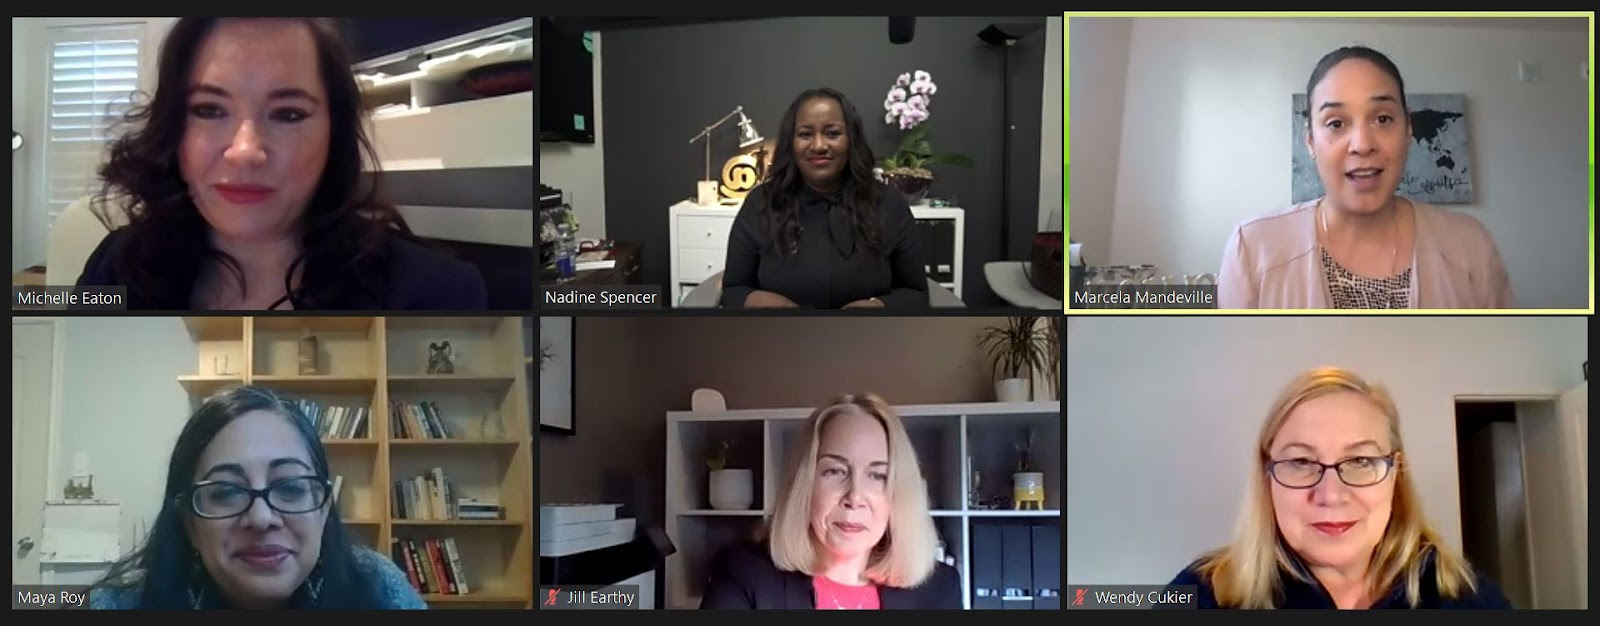 A screenshot of event speakers featuring Michelle Eaton, Nadine Spencer, Marcela Madeville, Maya Roy, Jill Earthy, and Wendy Cukier, with Marcela Madeville speaking.